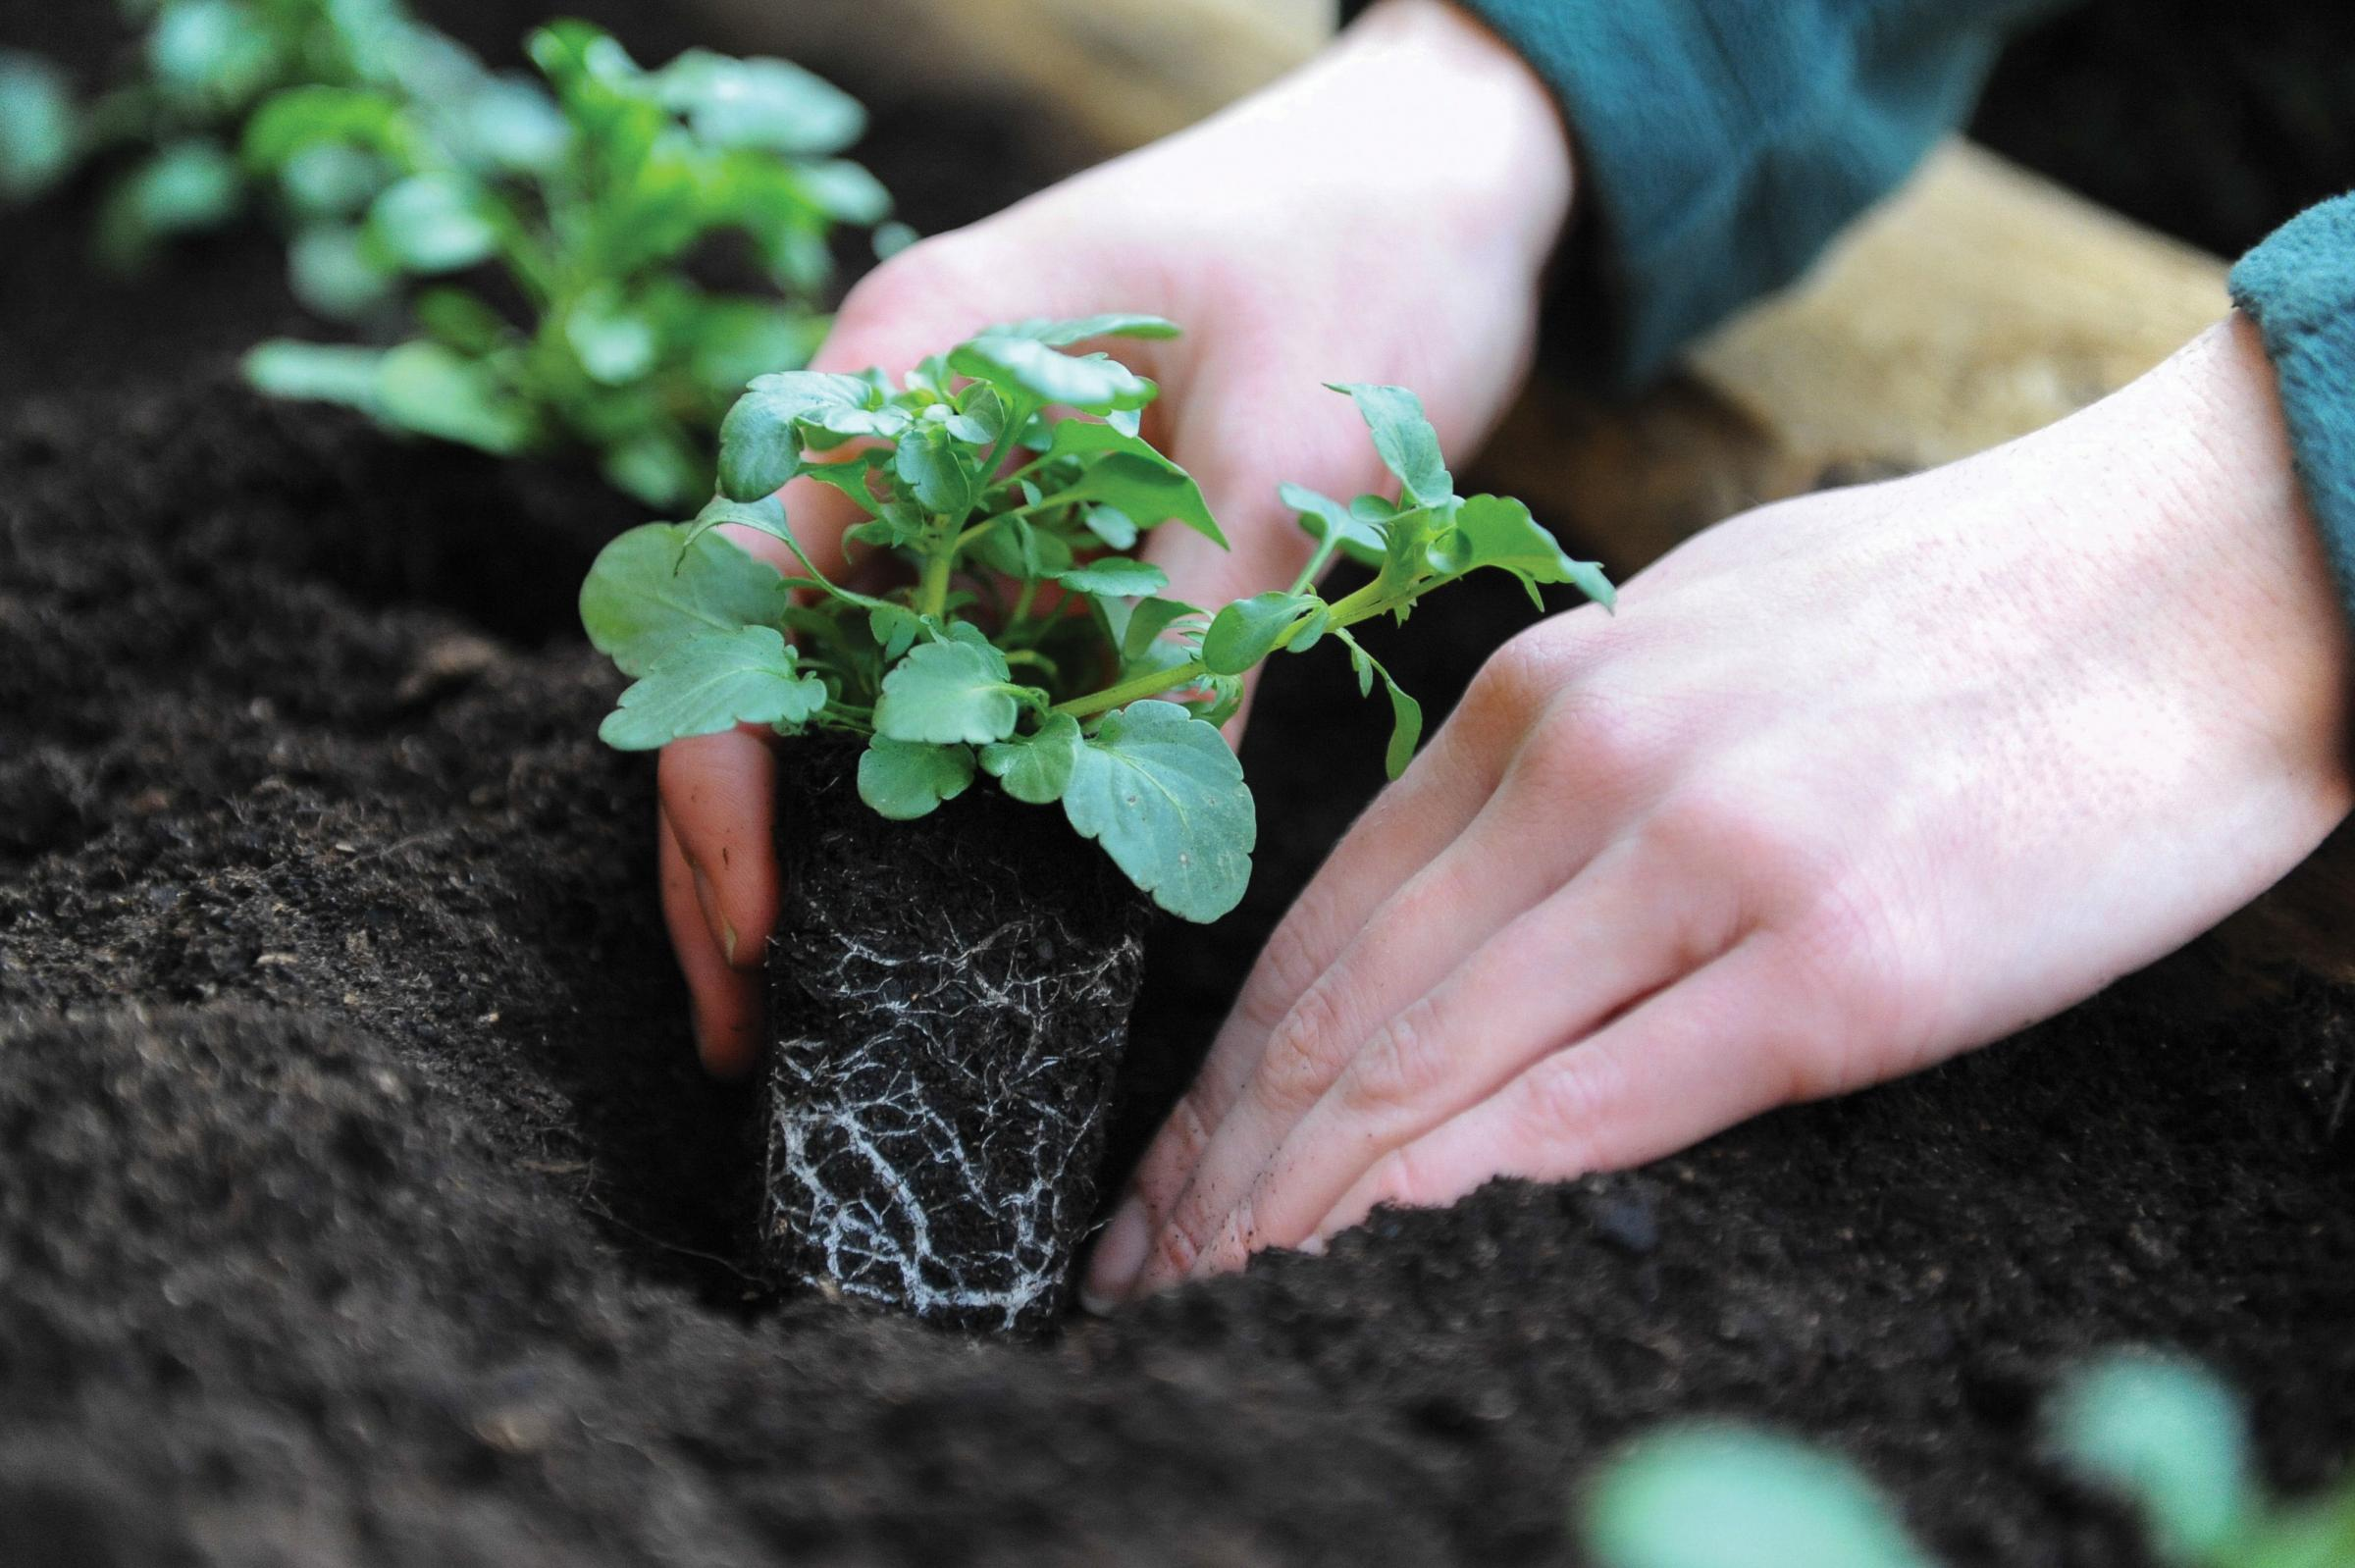 PLANTS WANTED: The event gives people the chance to swap unwanted plants